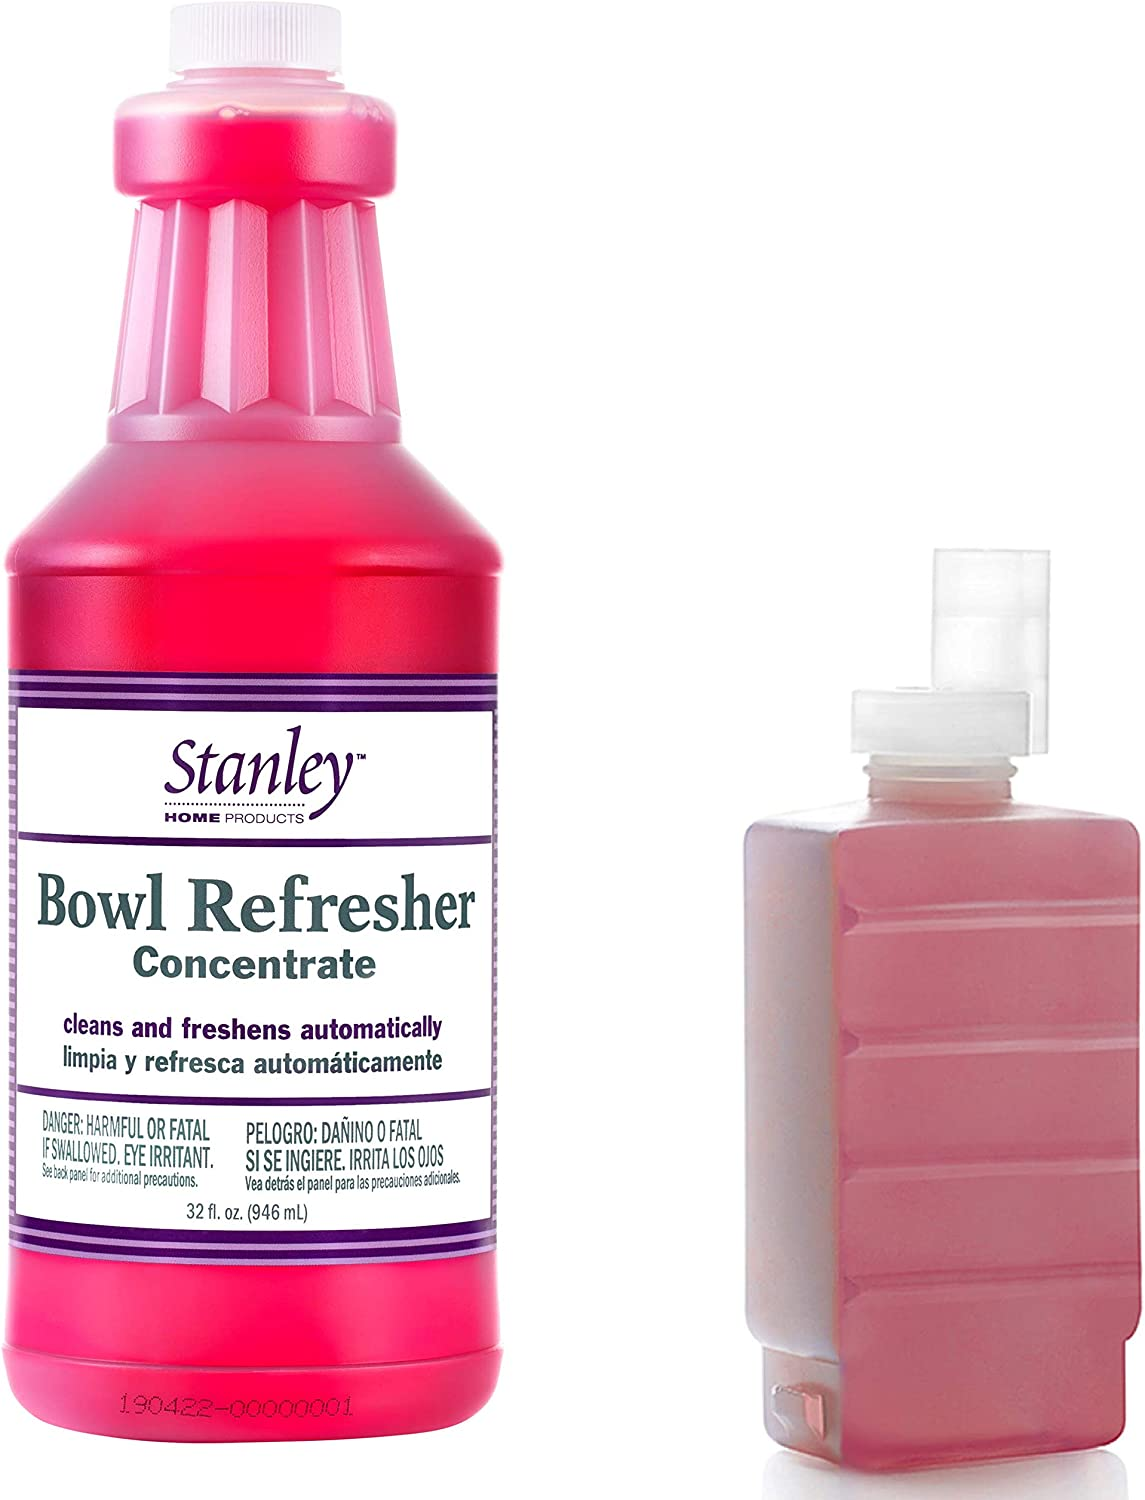 Stanley Home Products Bowl Refresher Concentrate with Dispenser